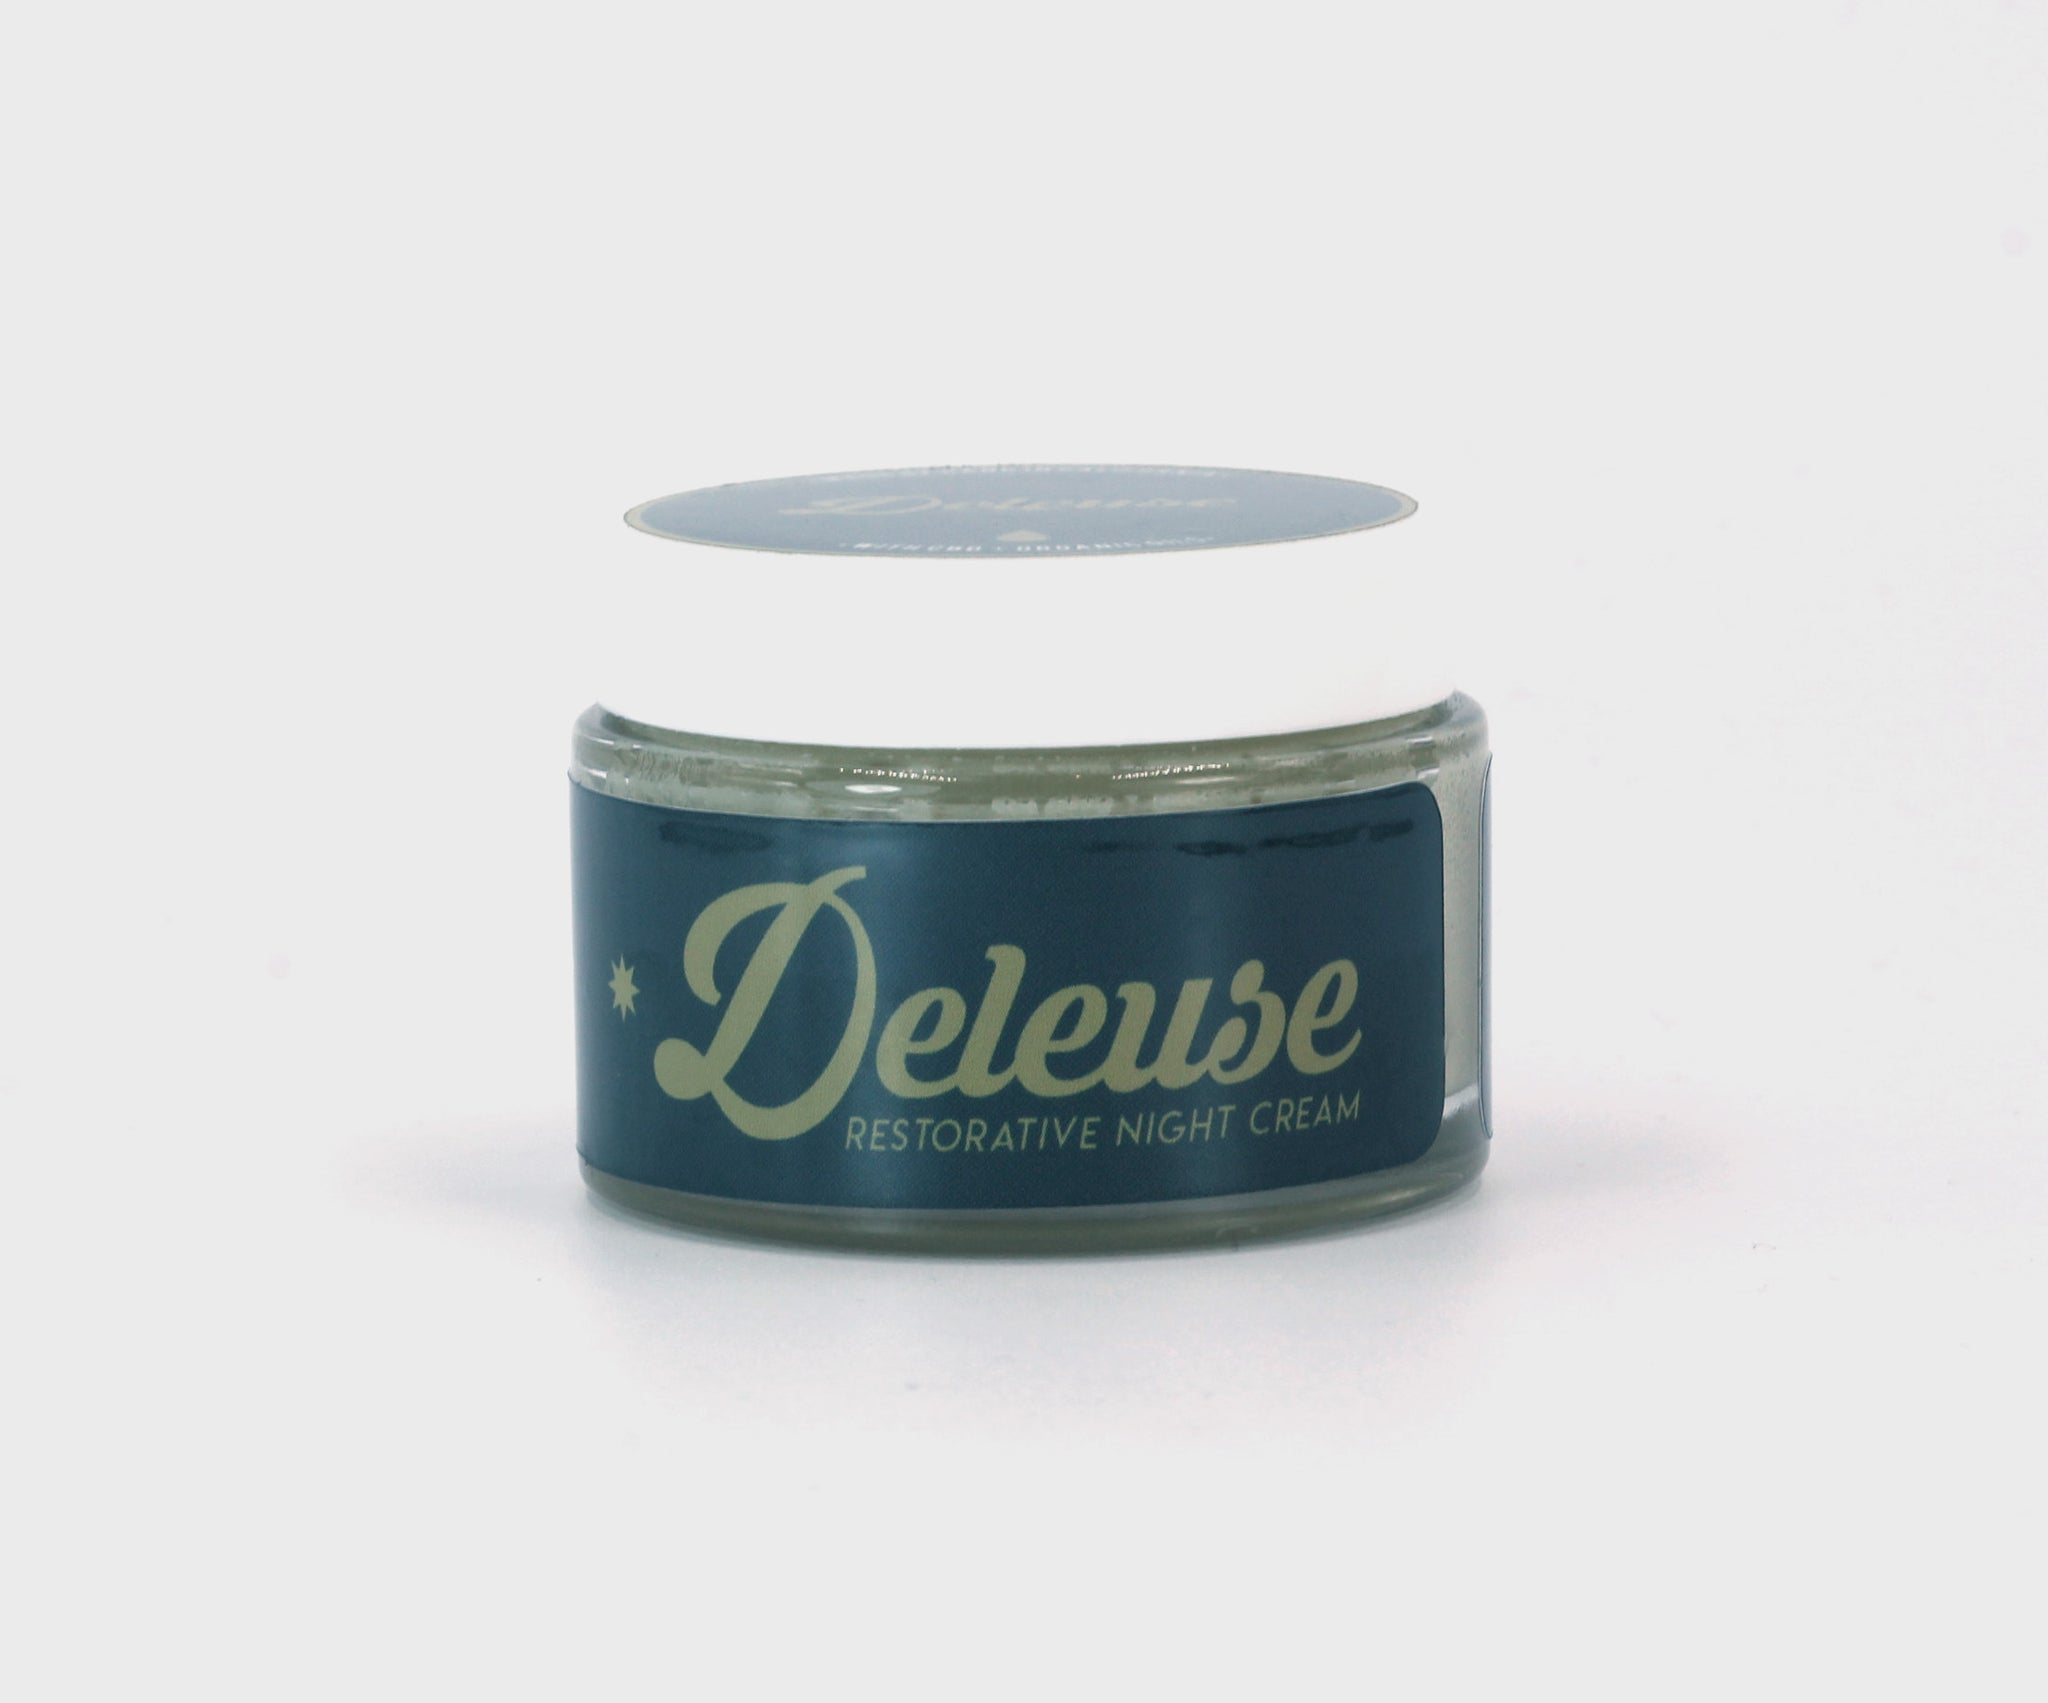 Deleuse Restorative Night  Cream with Organic Hemp Oil